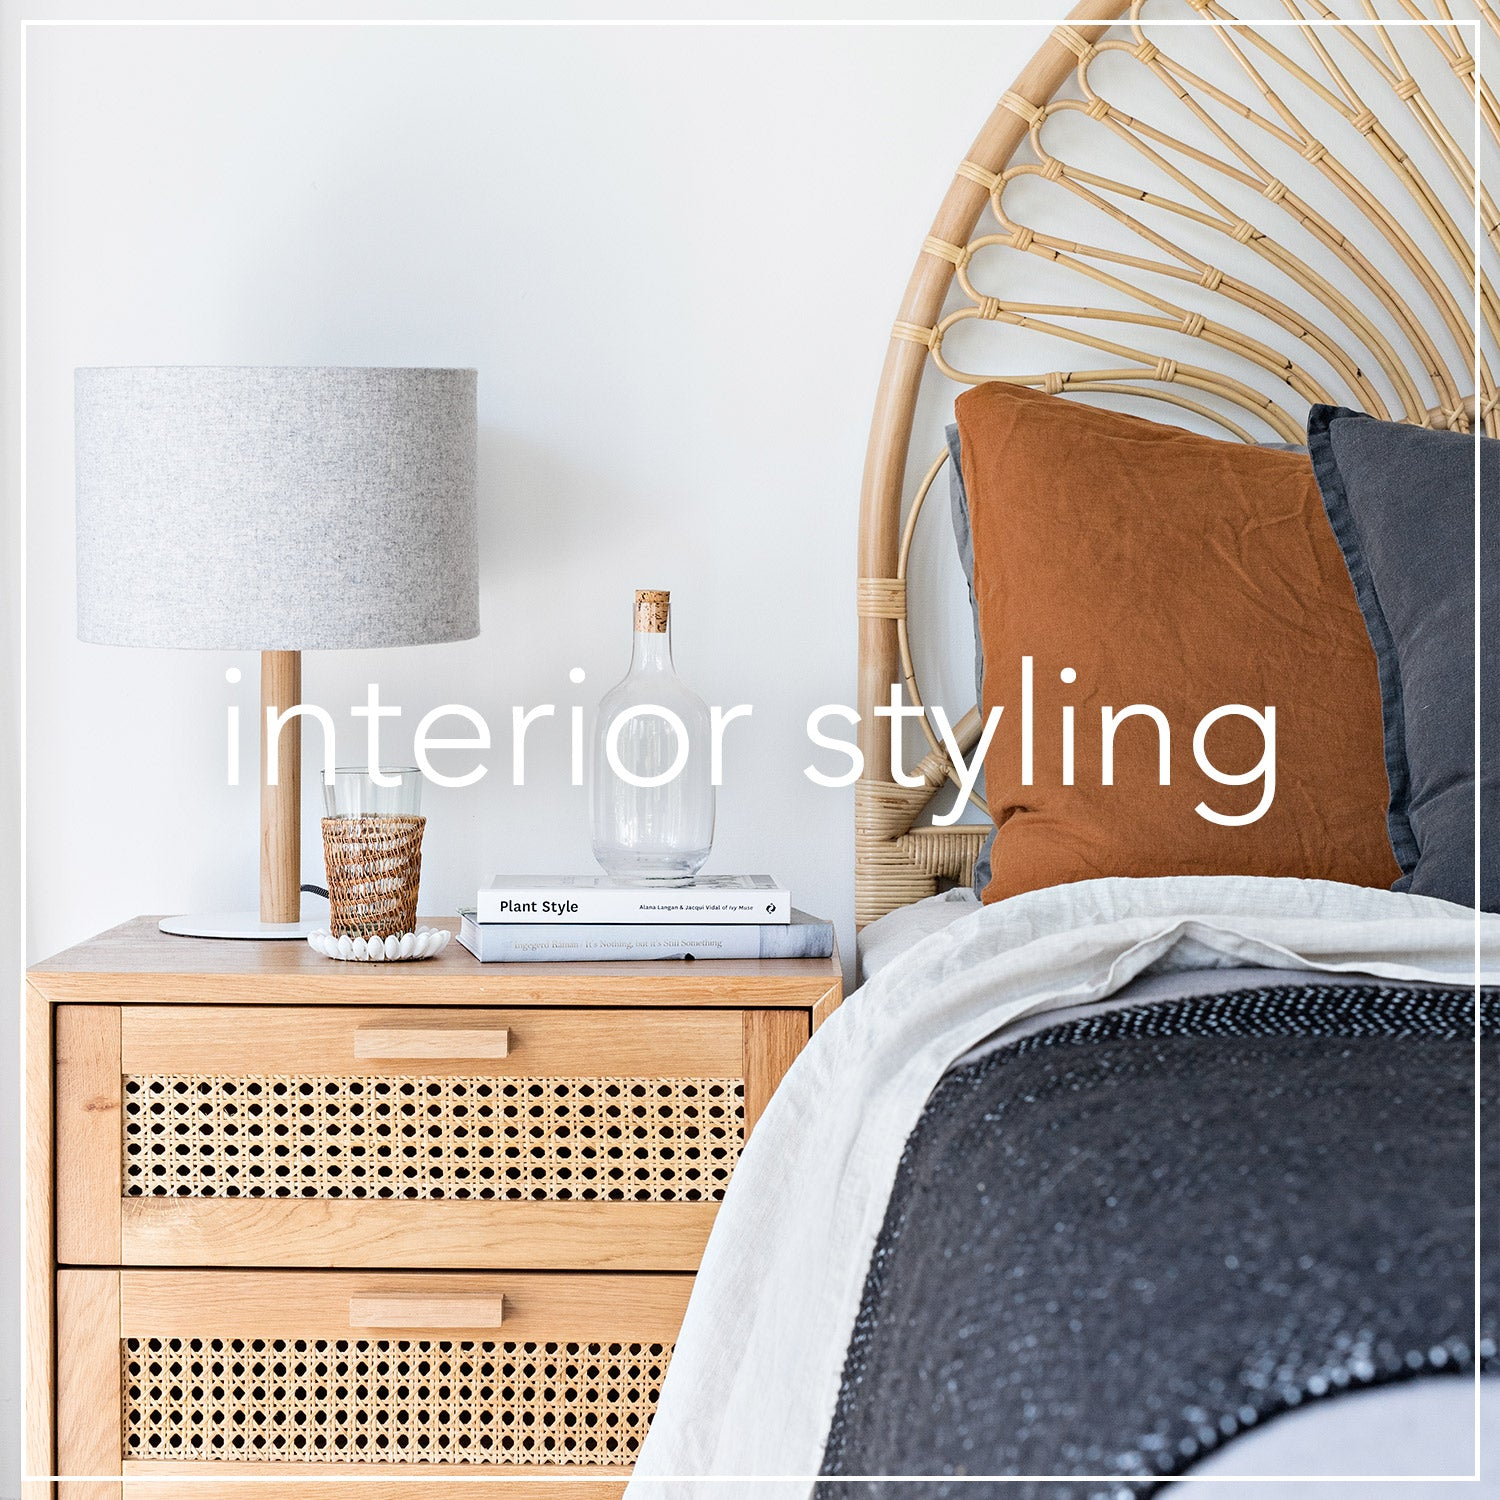 jessi eve interior styling